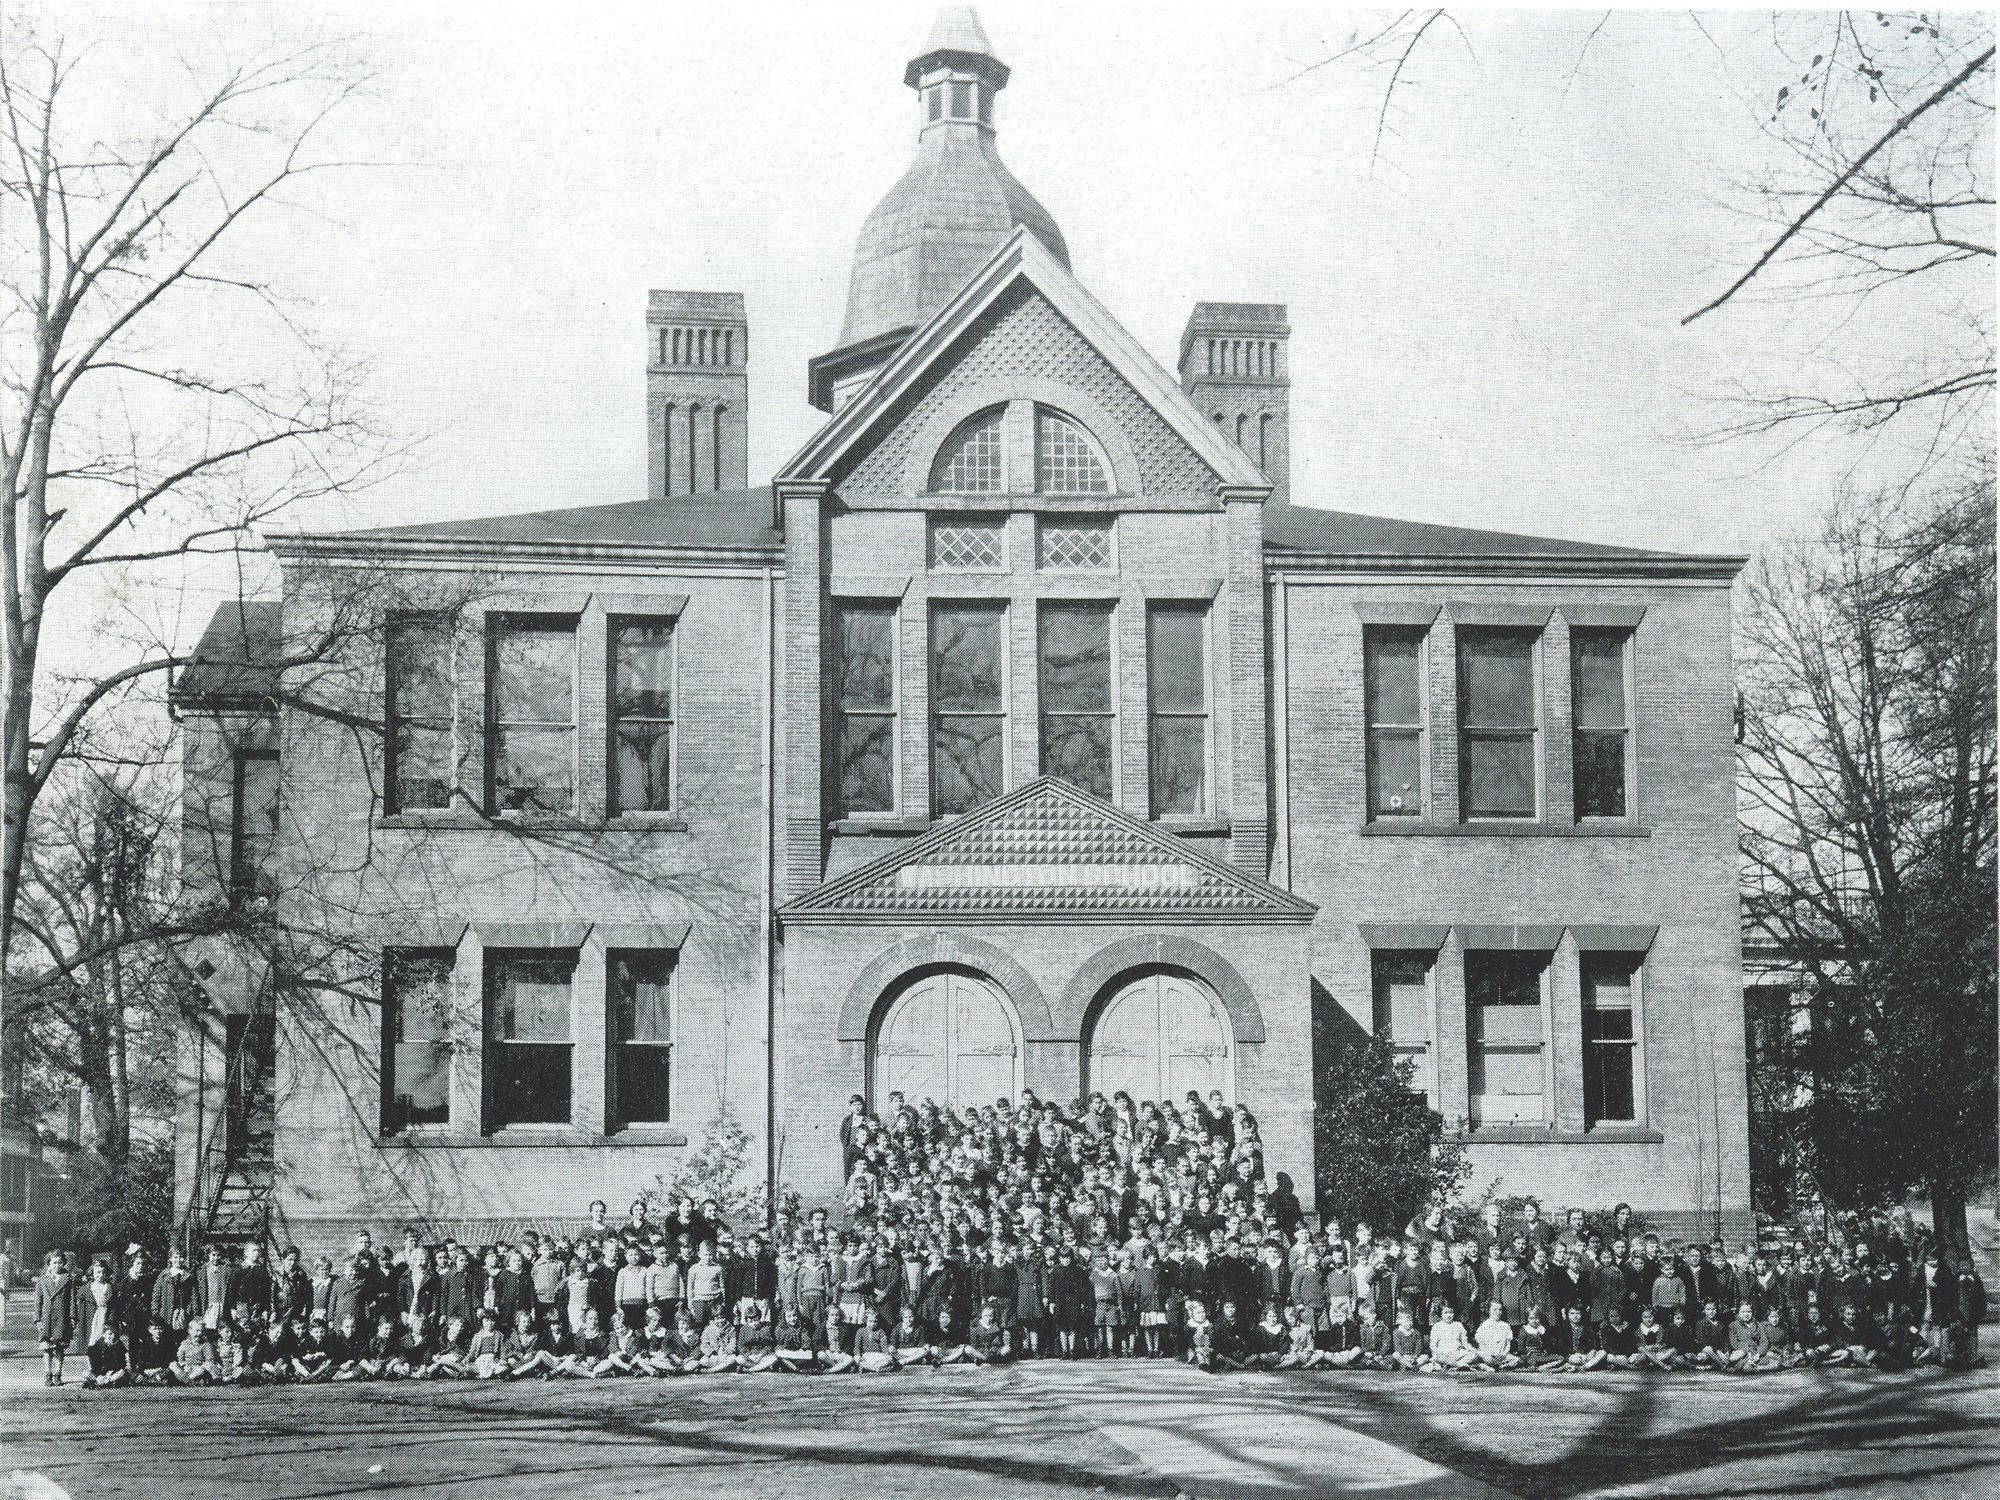 Washington School is seen in 1936. This photo was published in the school's yearbook that year.